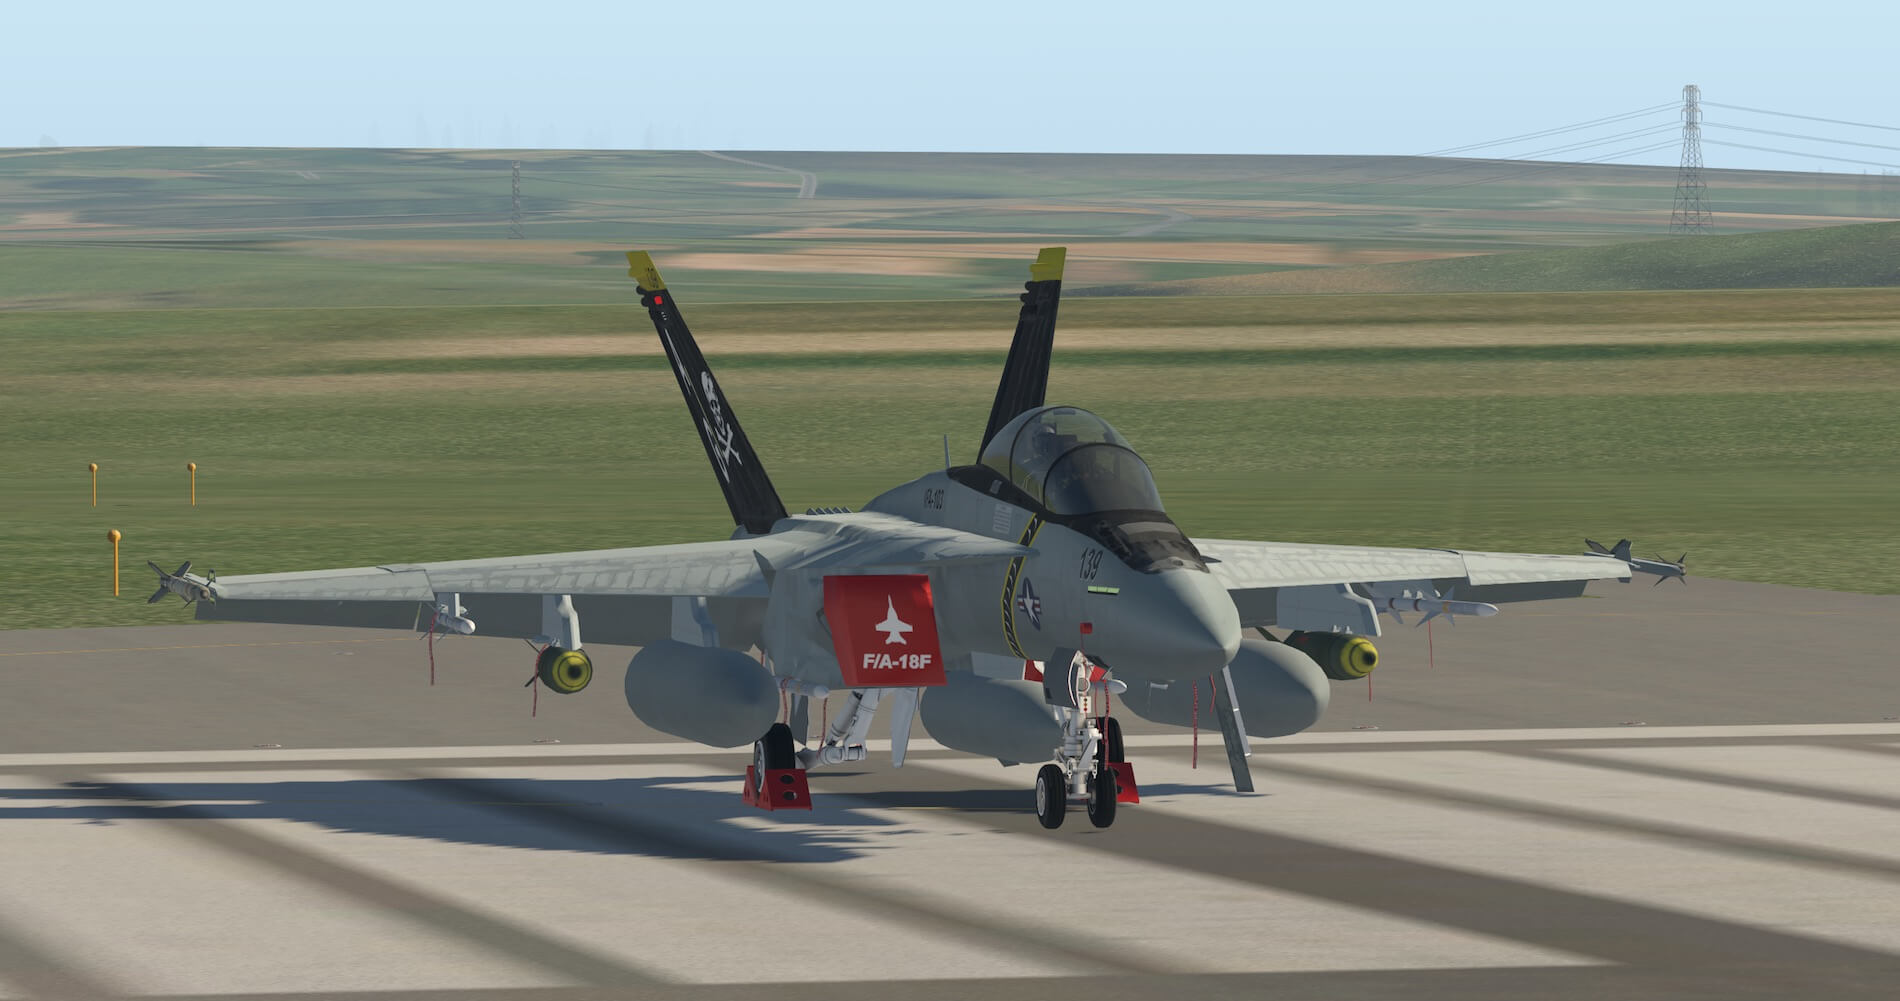 Review Colimata Fa 18f X Plained The Source For All Your F18 Jet Engine Diagram When Viewed With Engines Running Lights Are Clear And Bright Detail Remains High Model Fits In To Scenery Plane Very Well